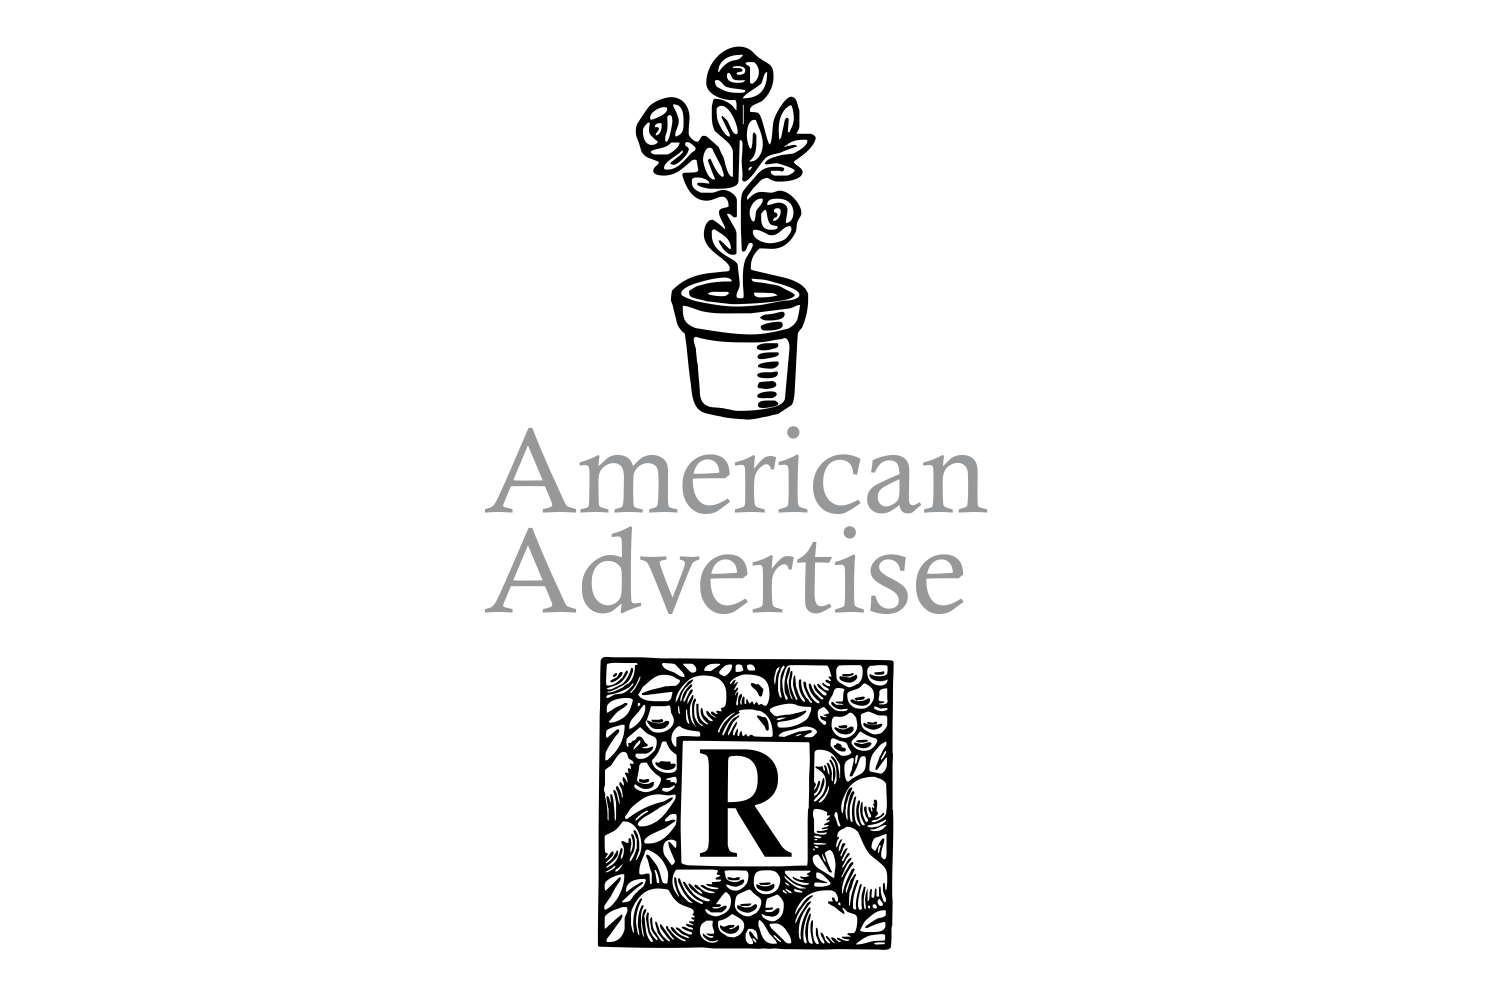 American Advertise (family pack) example image 3